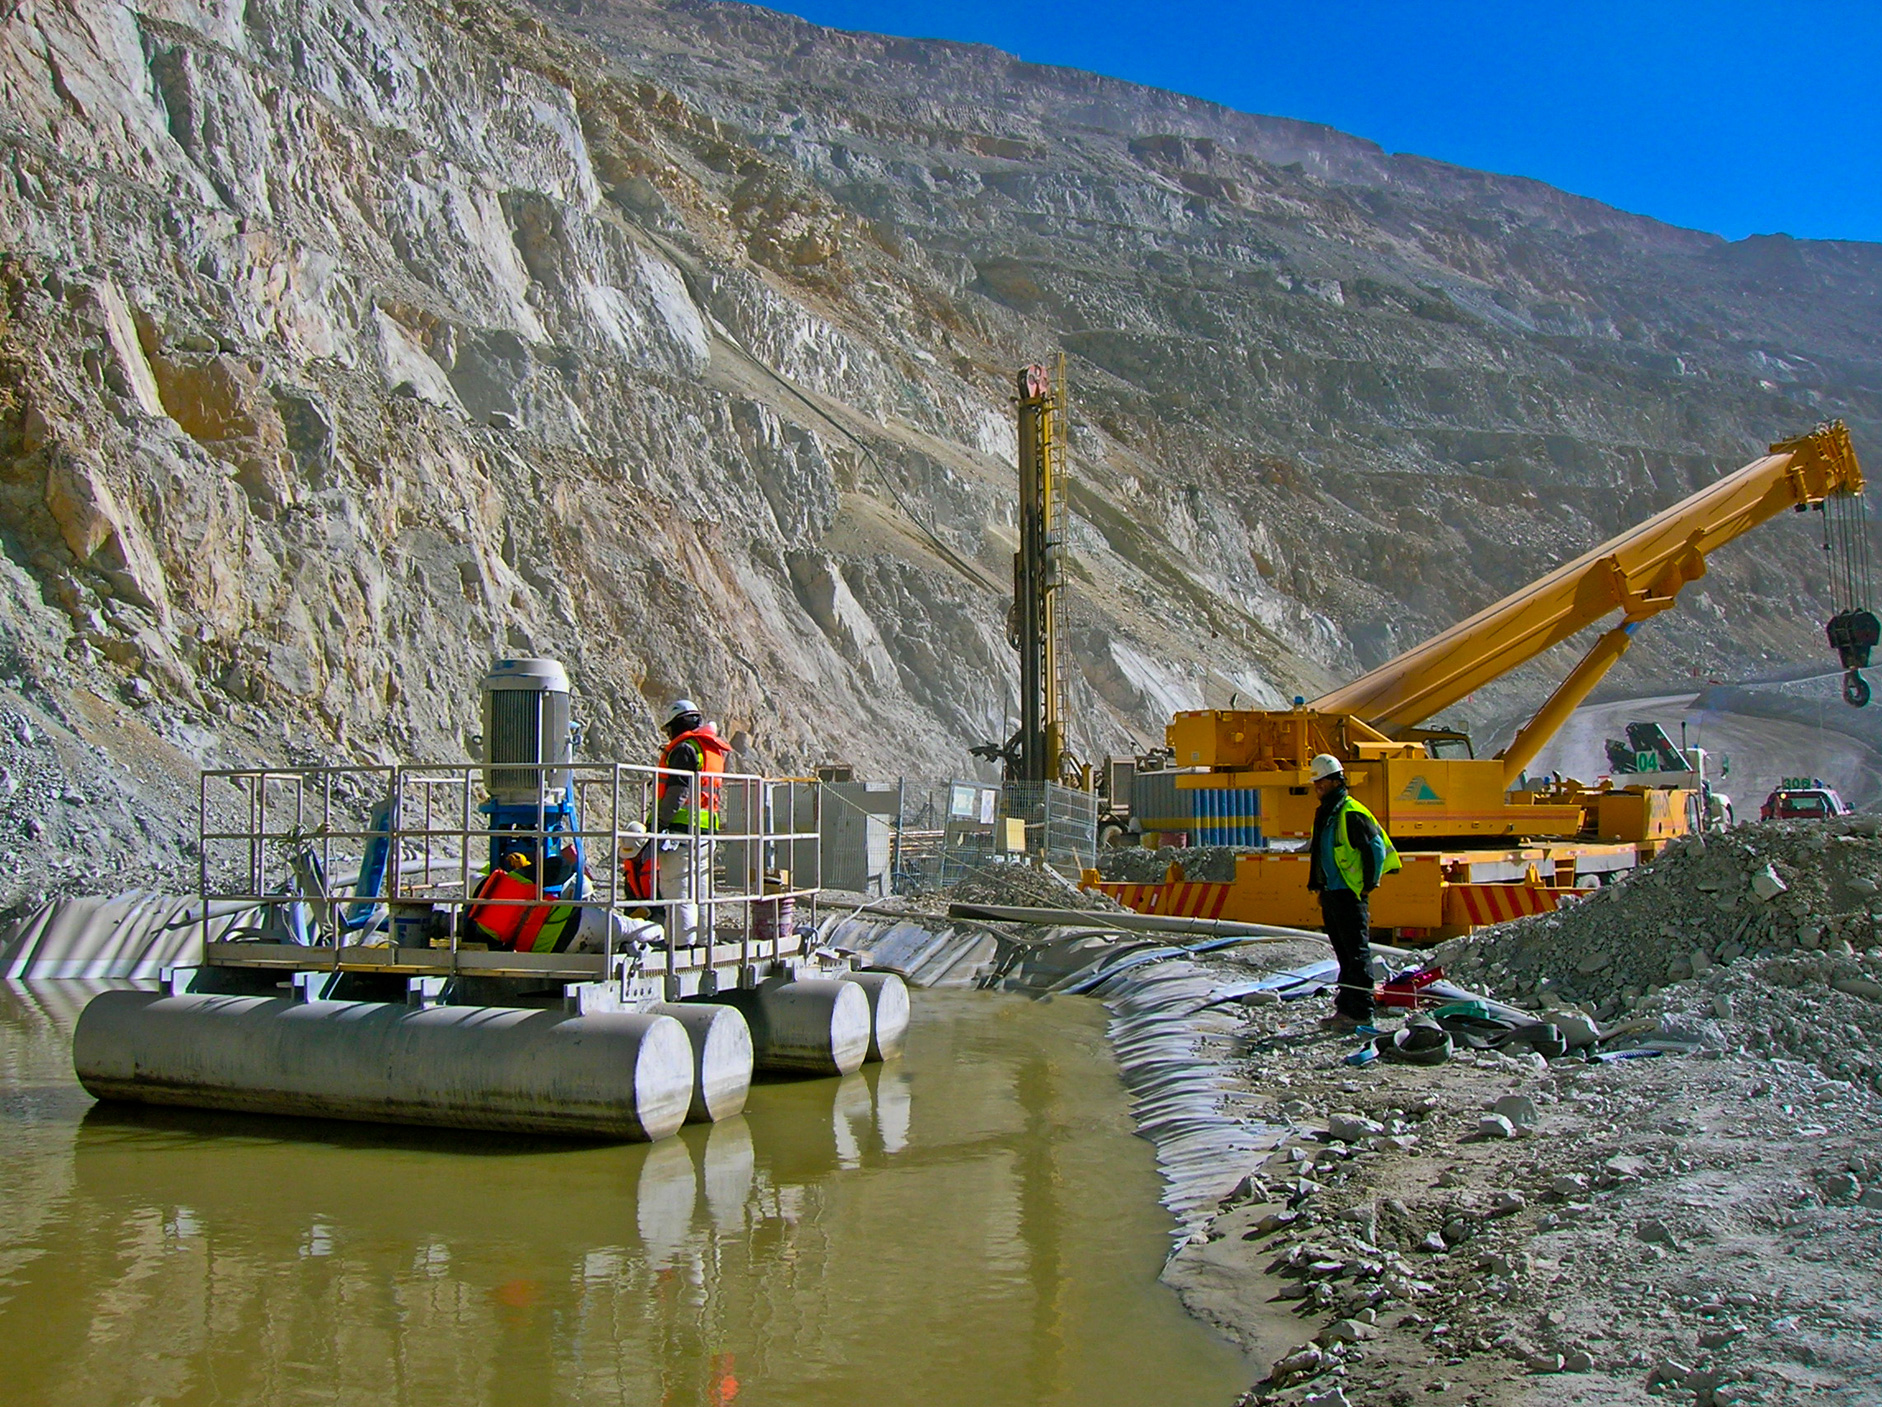 A dewatering pumping system at work in an open pit mine in northern Chile